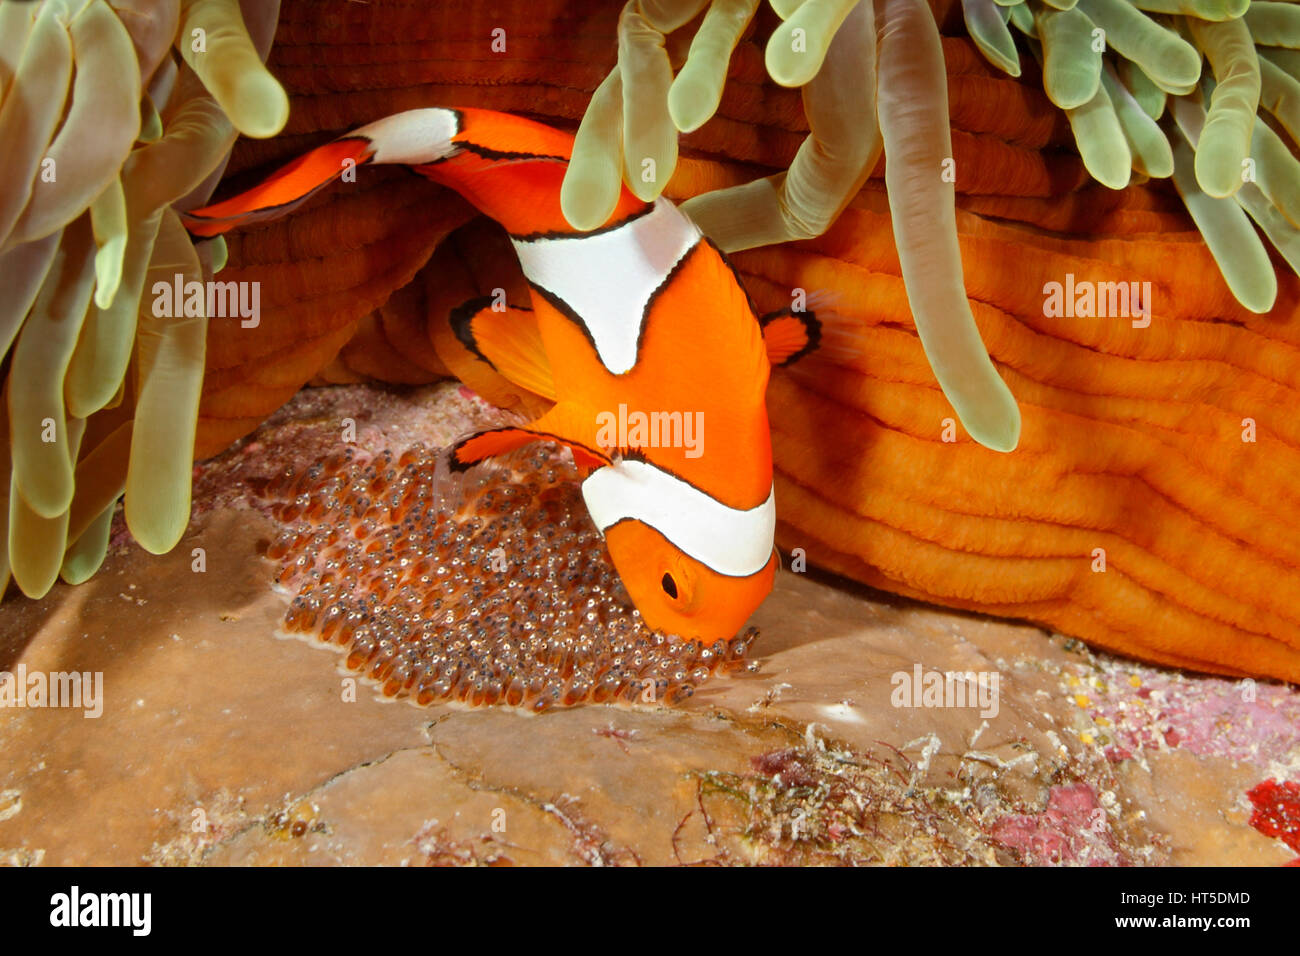 clown-anemonefish-amphiprion-percula-tending-eggs-laid-at-the-base-HT5DMD.jpg